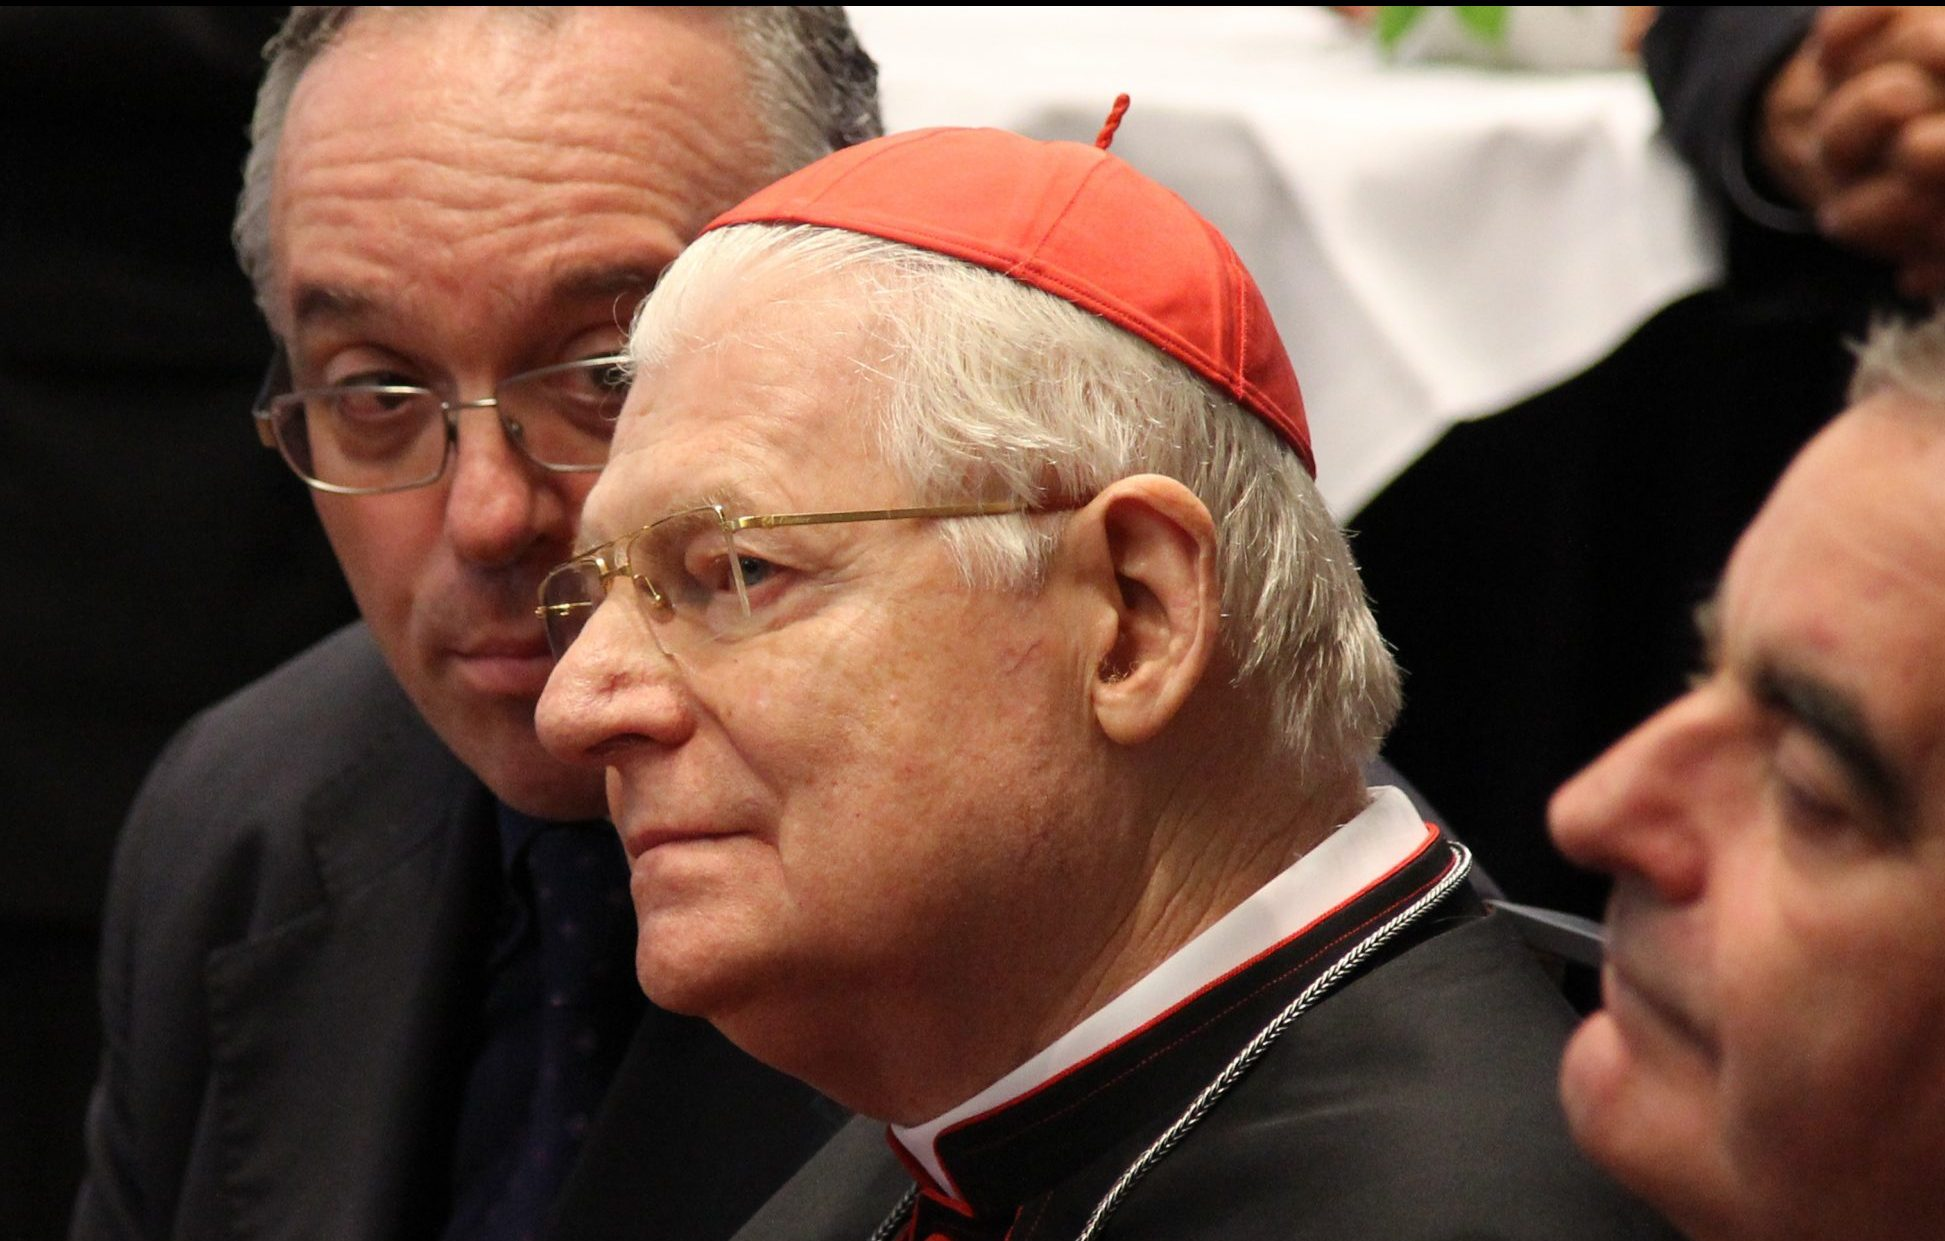 Bishops speaking up, defending Pope Francis and Vatican II